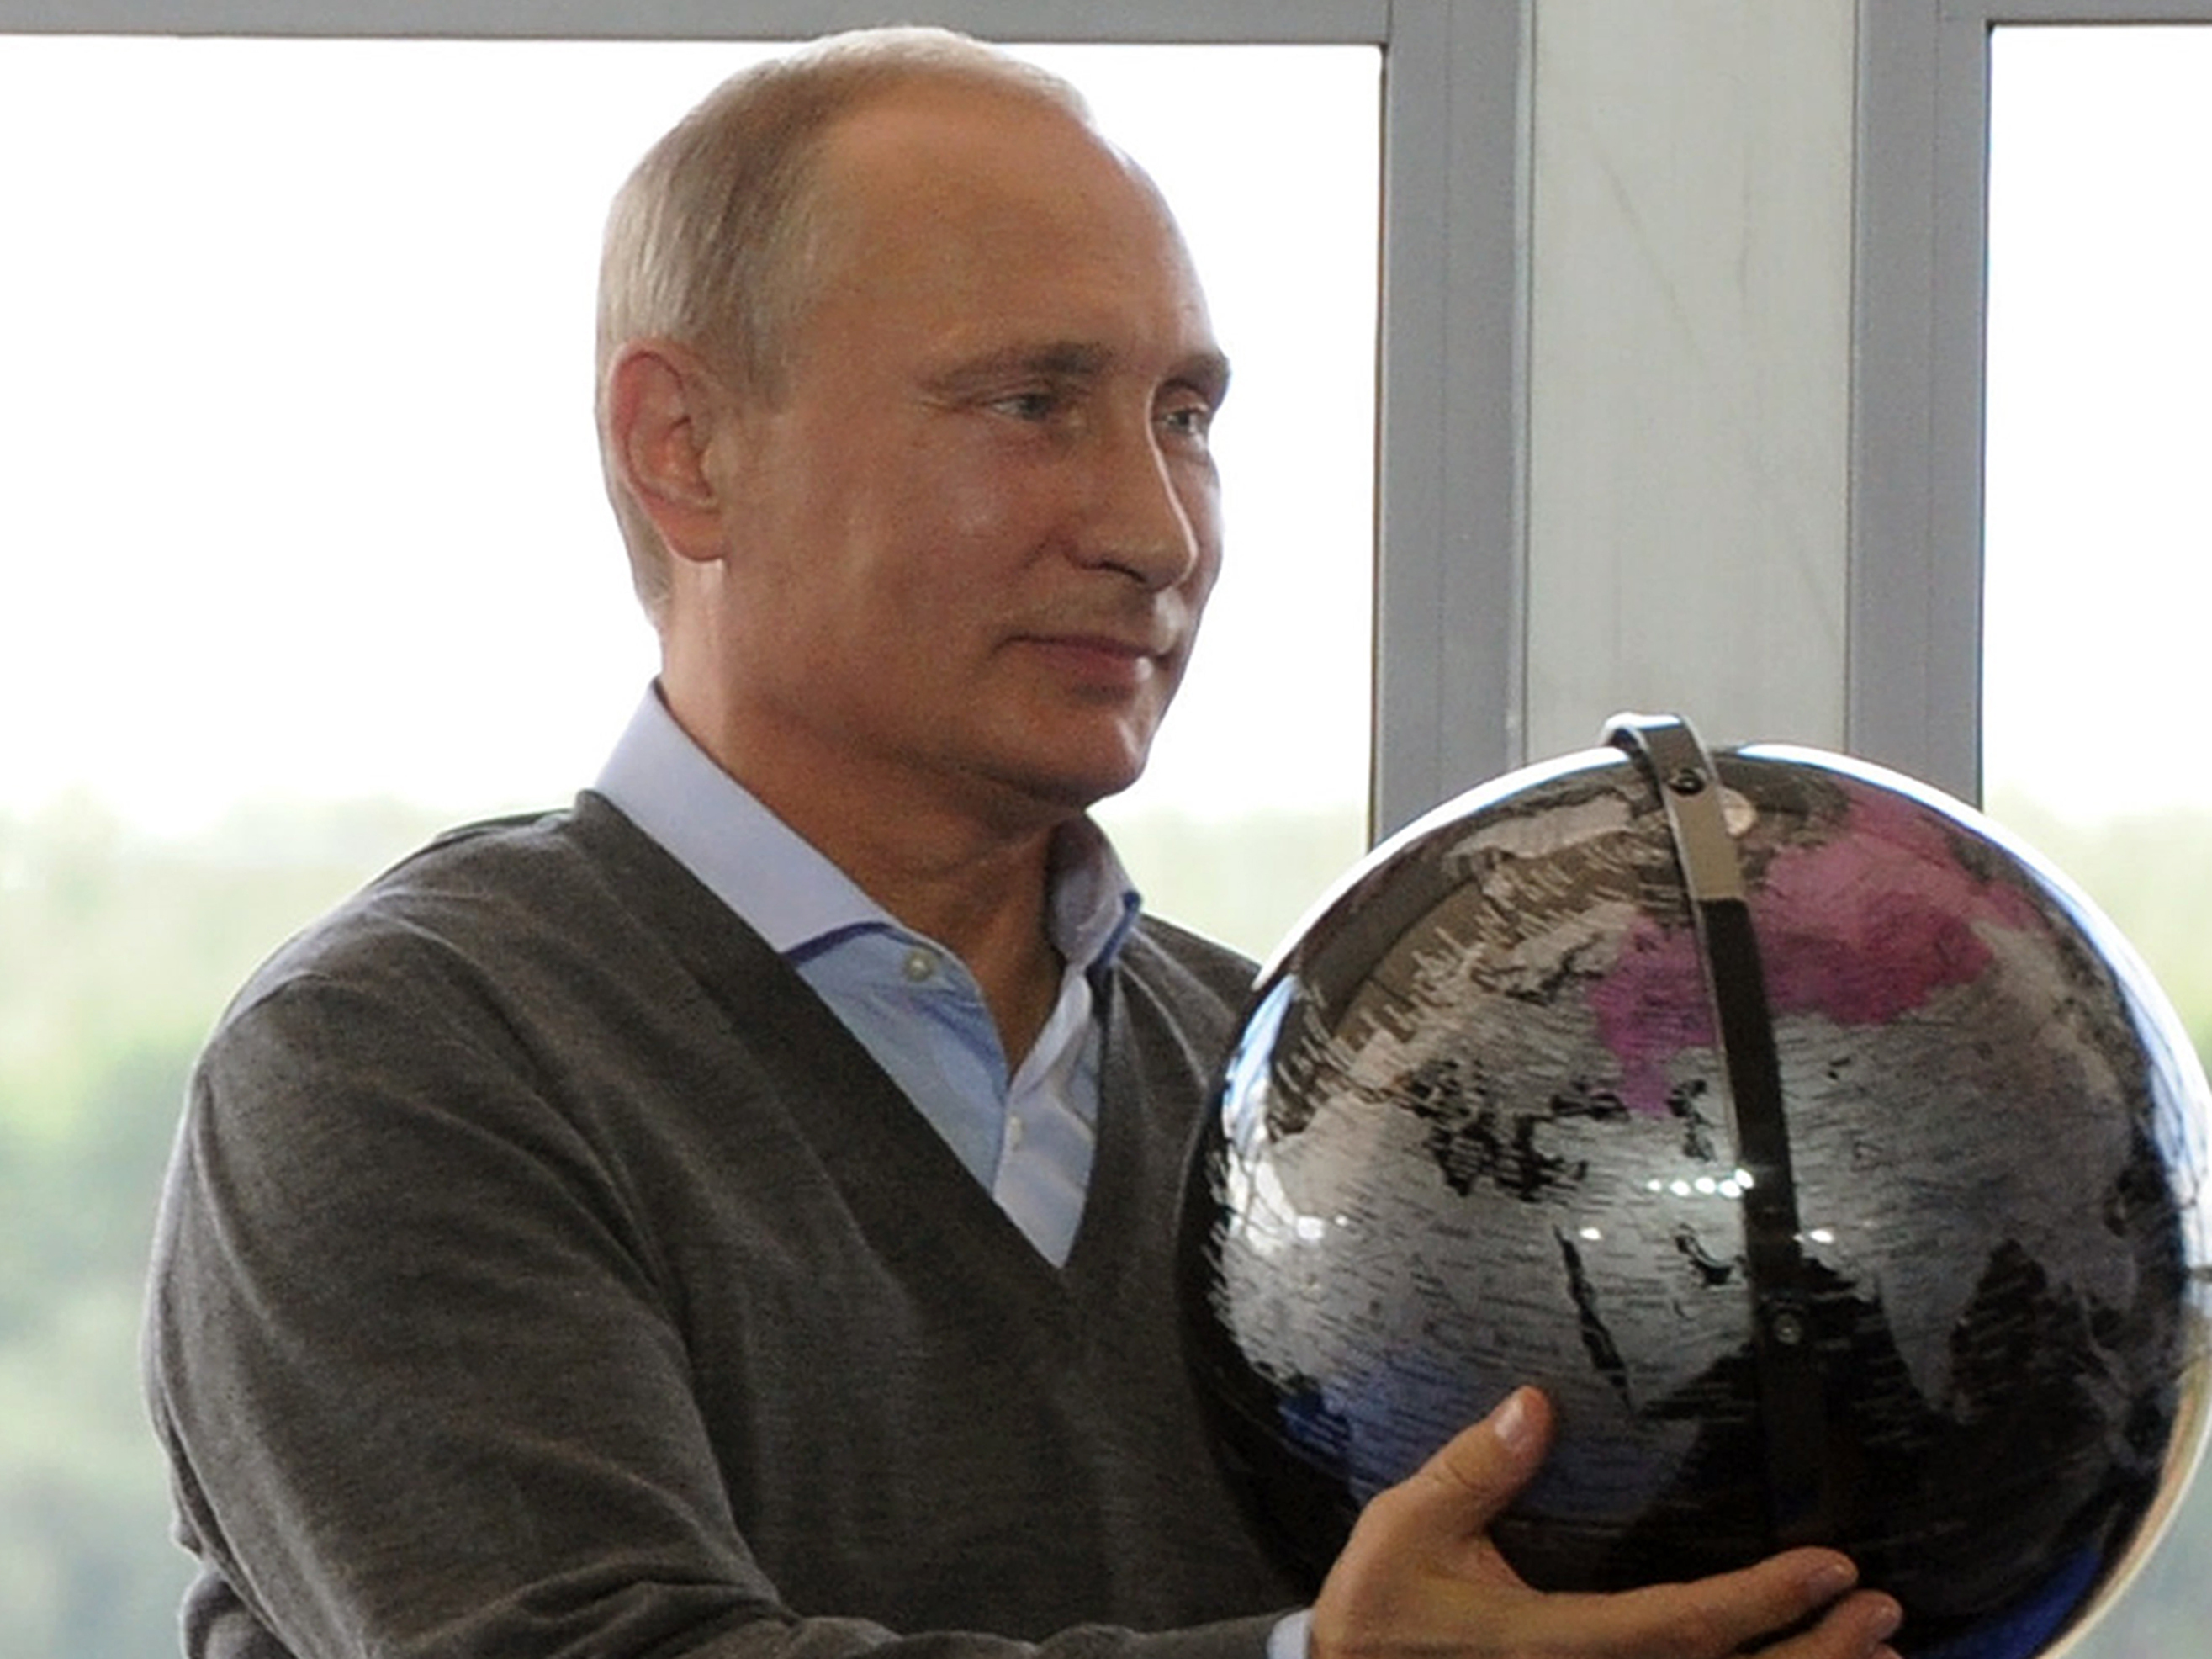 Russian President Vladimir Putin holds a terrestrial globe presented him as a gift in Tver region, Russia, on Friday.